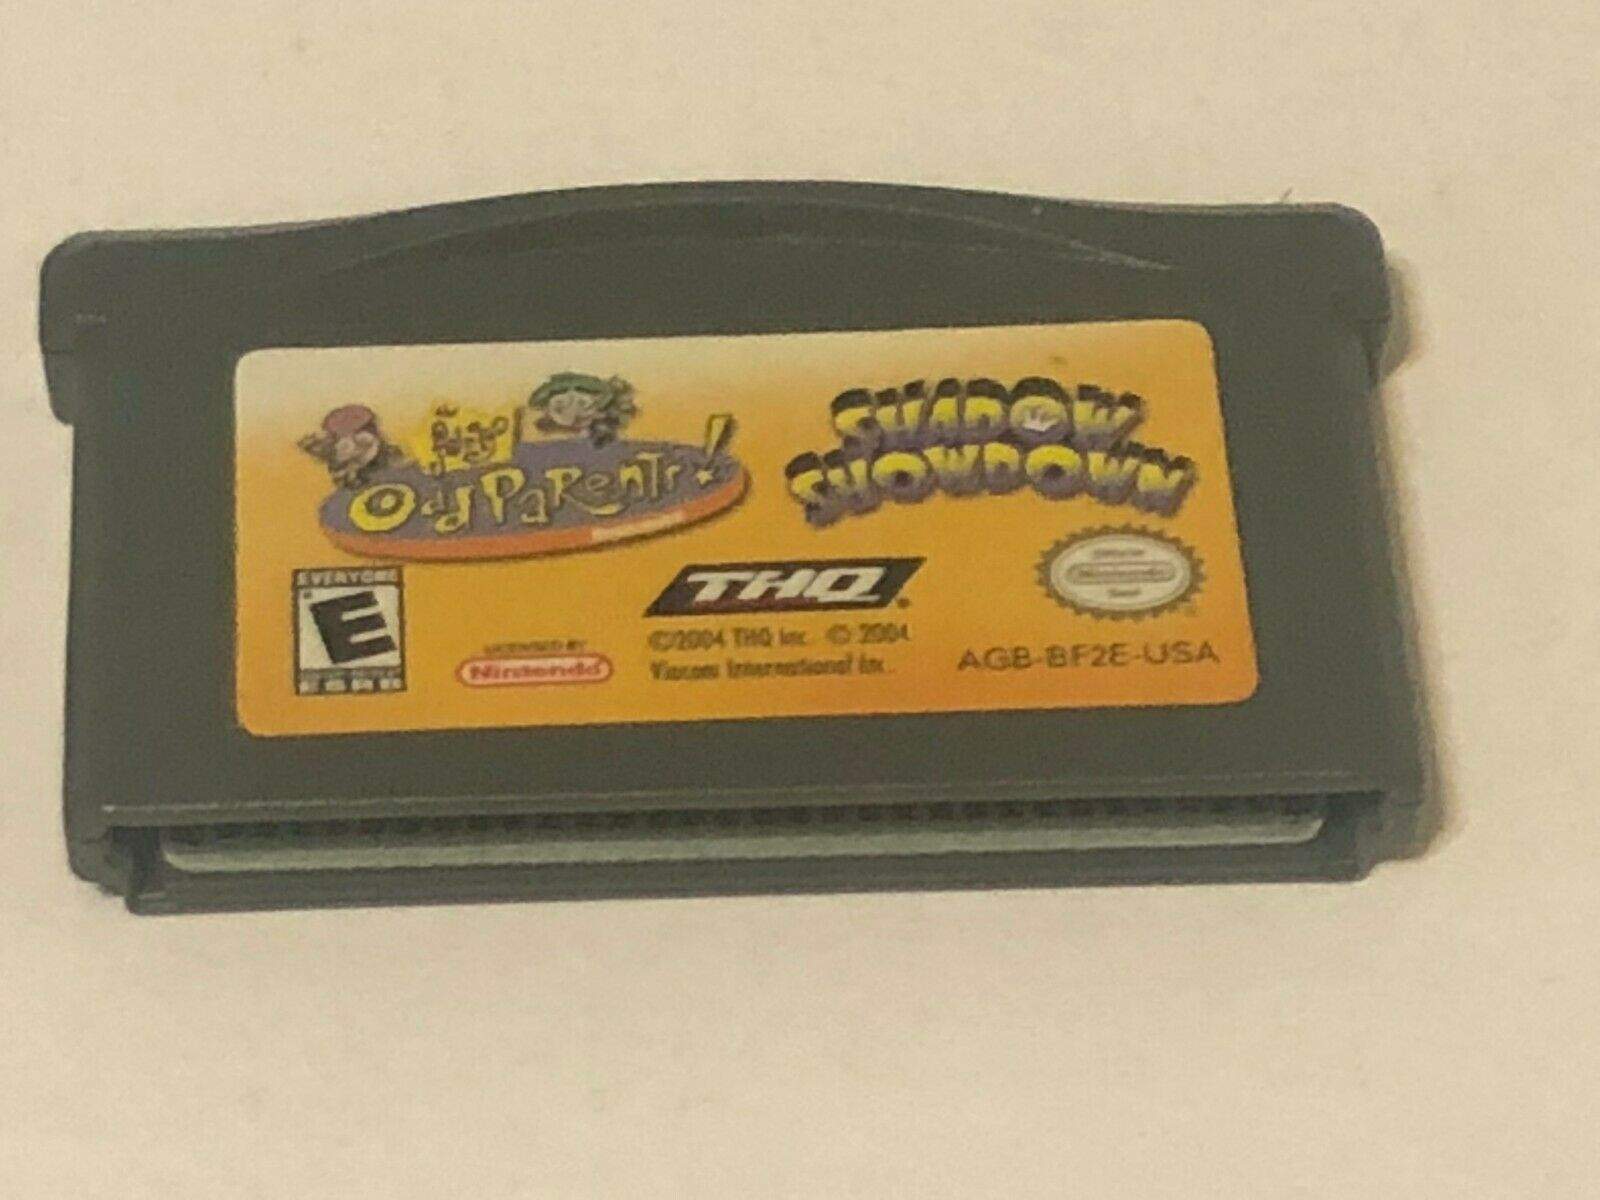 Fairly OddParents: Shadow Showdown Nintendo Game Boy Advance